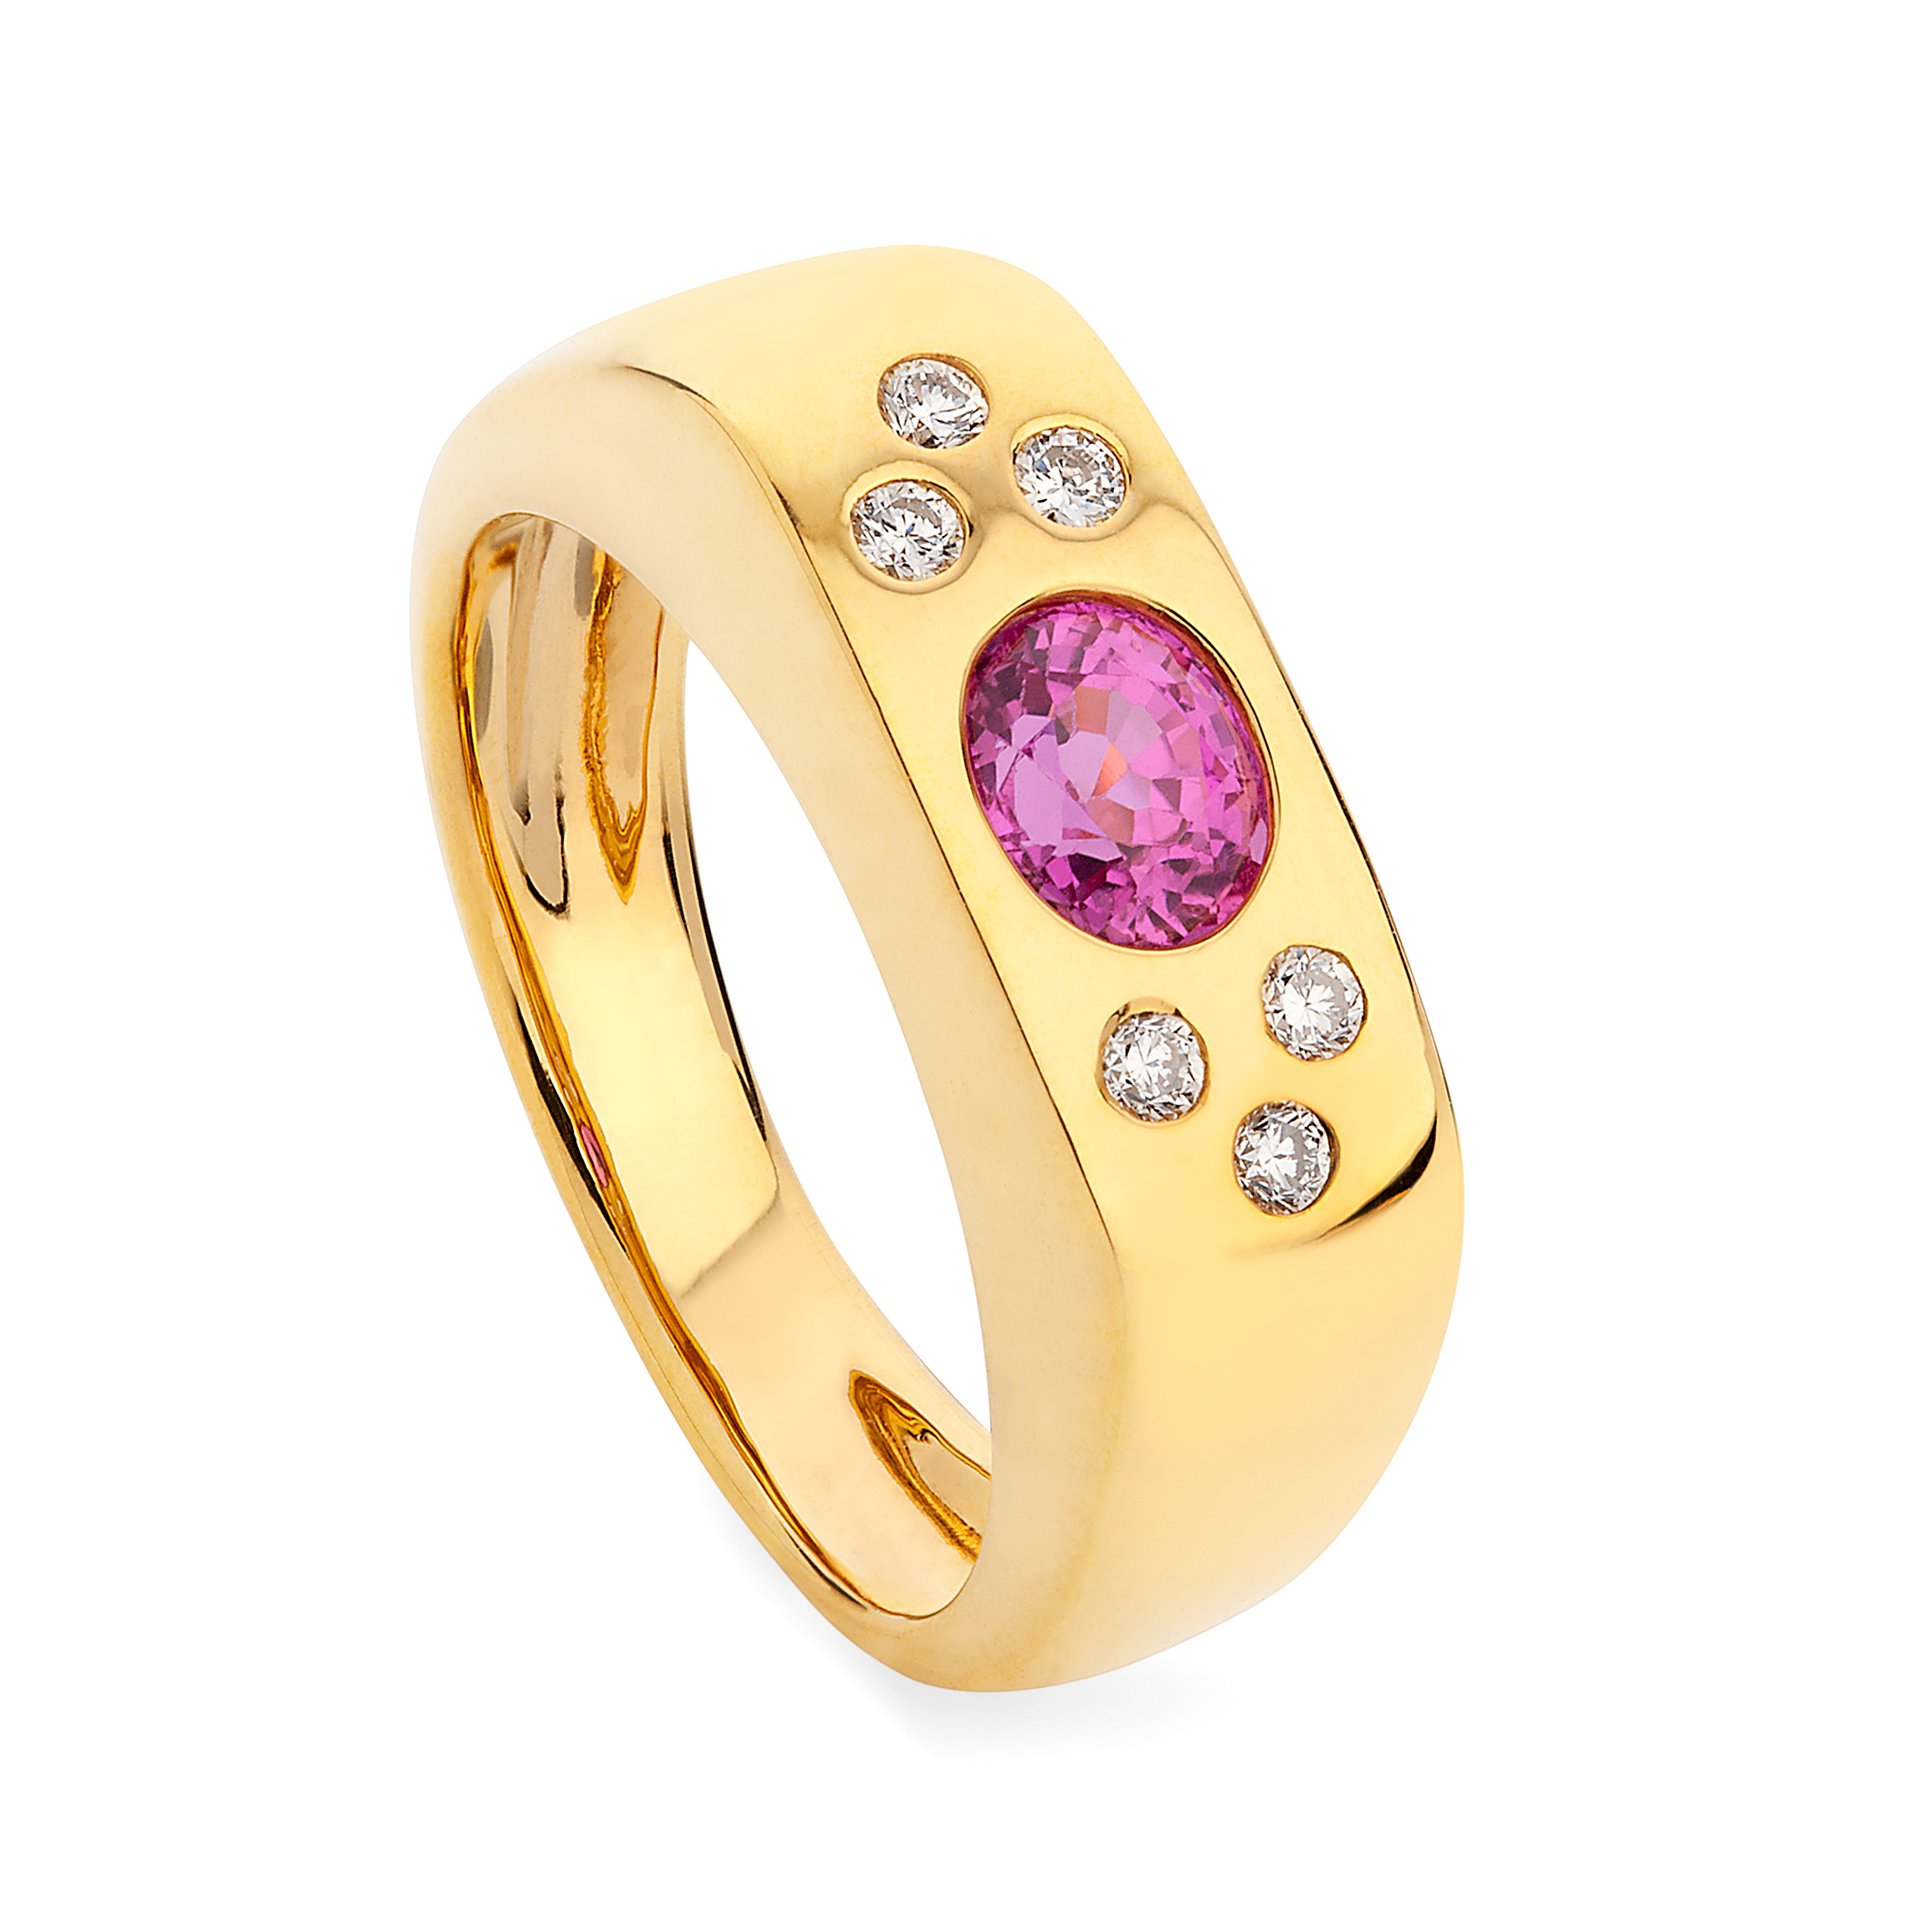 Happy Ring – Vibrant Pink Sapphire And Diamonds In 18k Gold